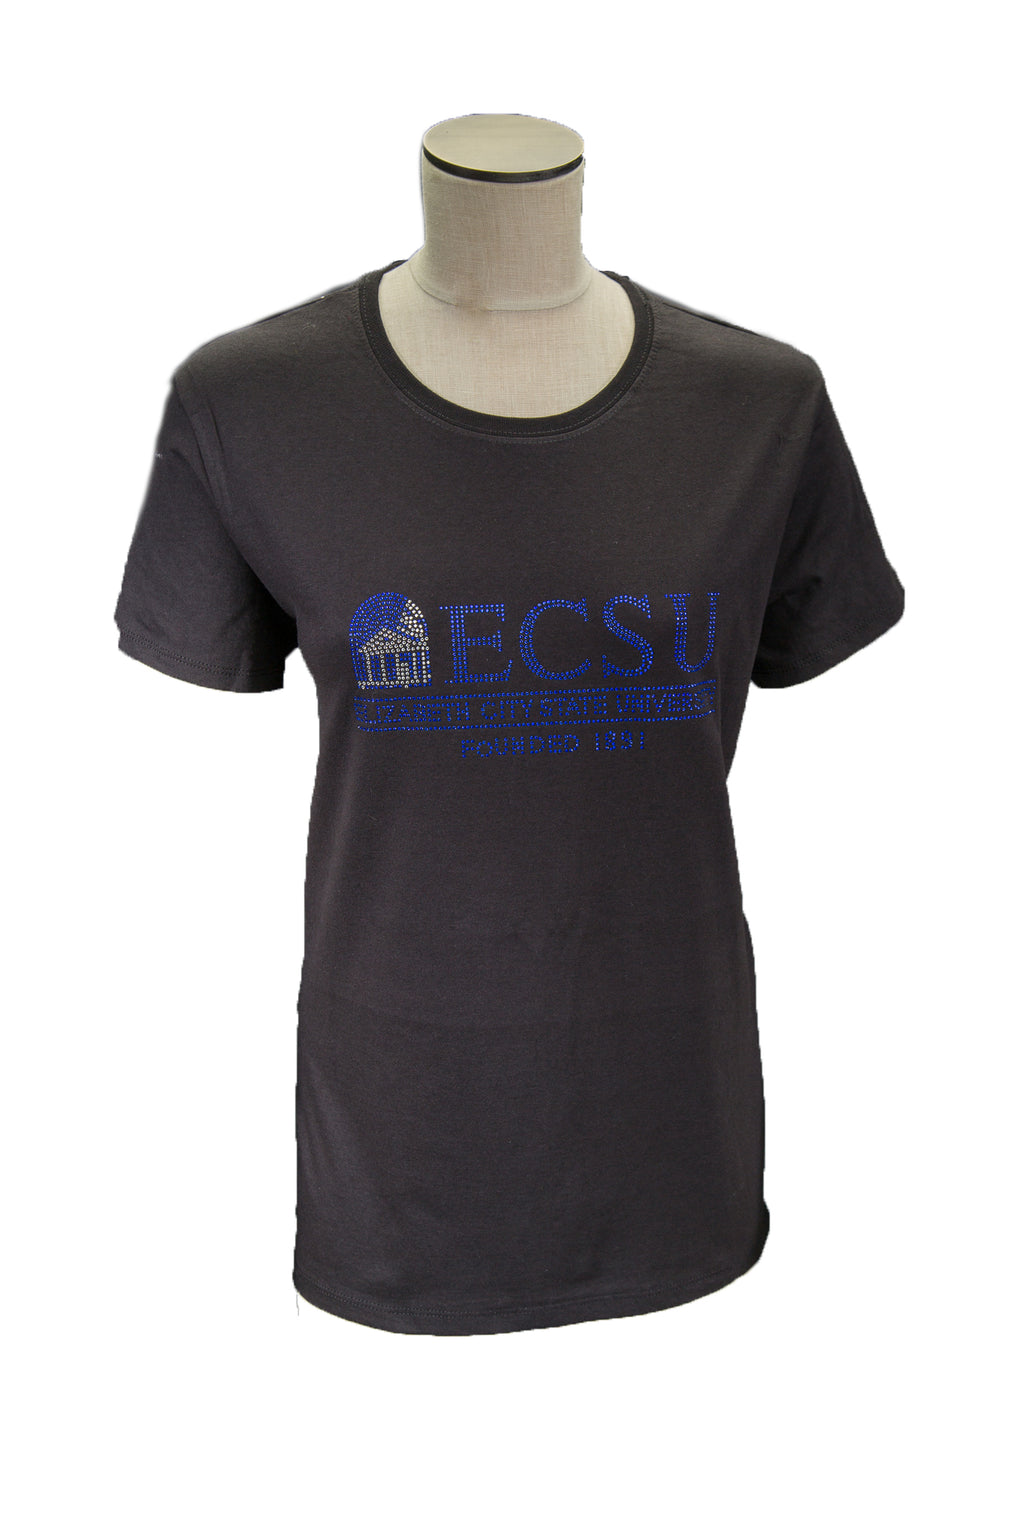 Elizabeth City State University Zeta Phi Beta Bling Shirt